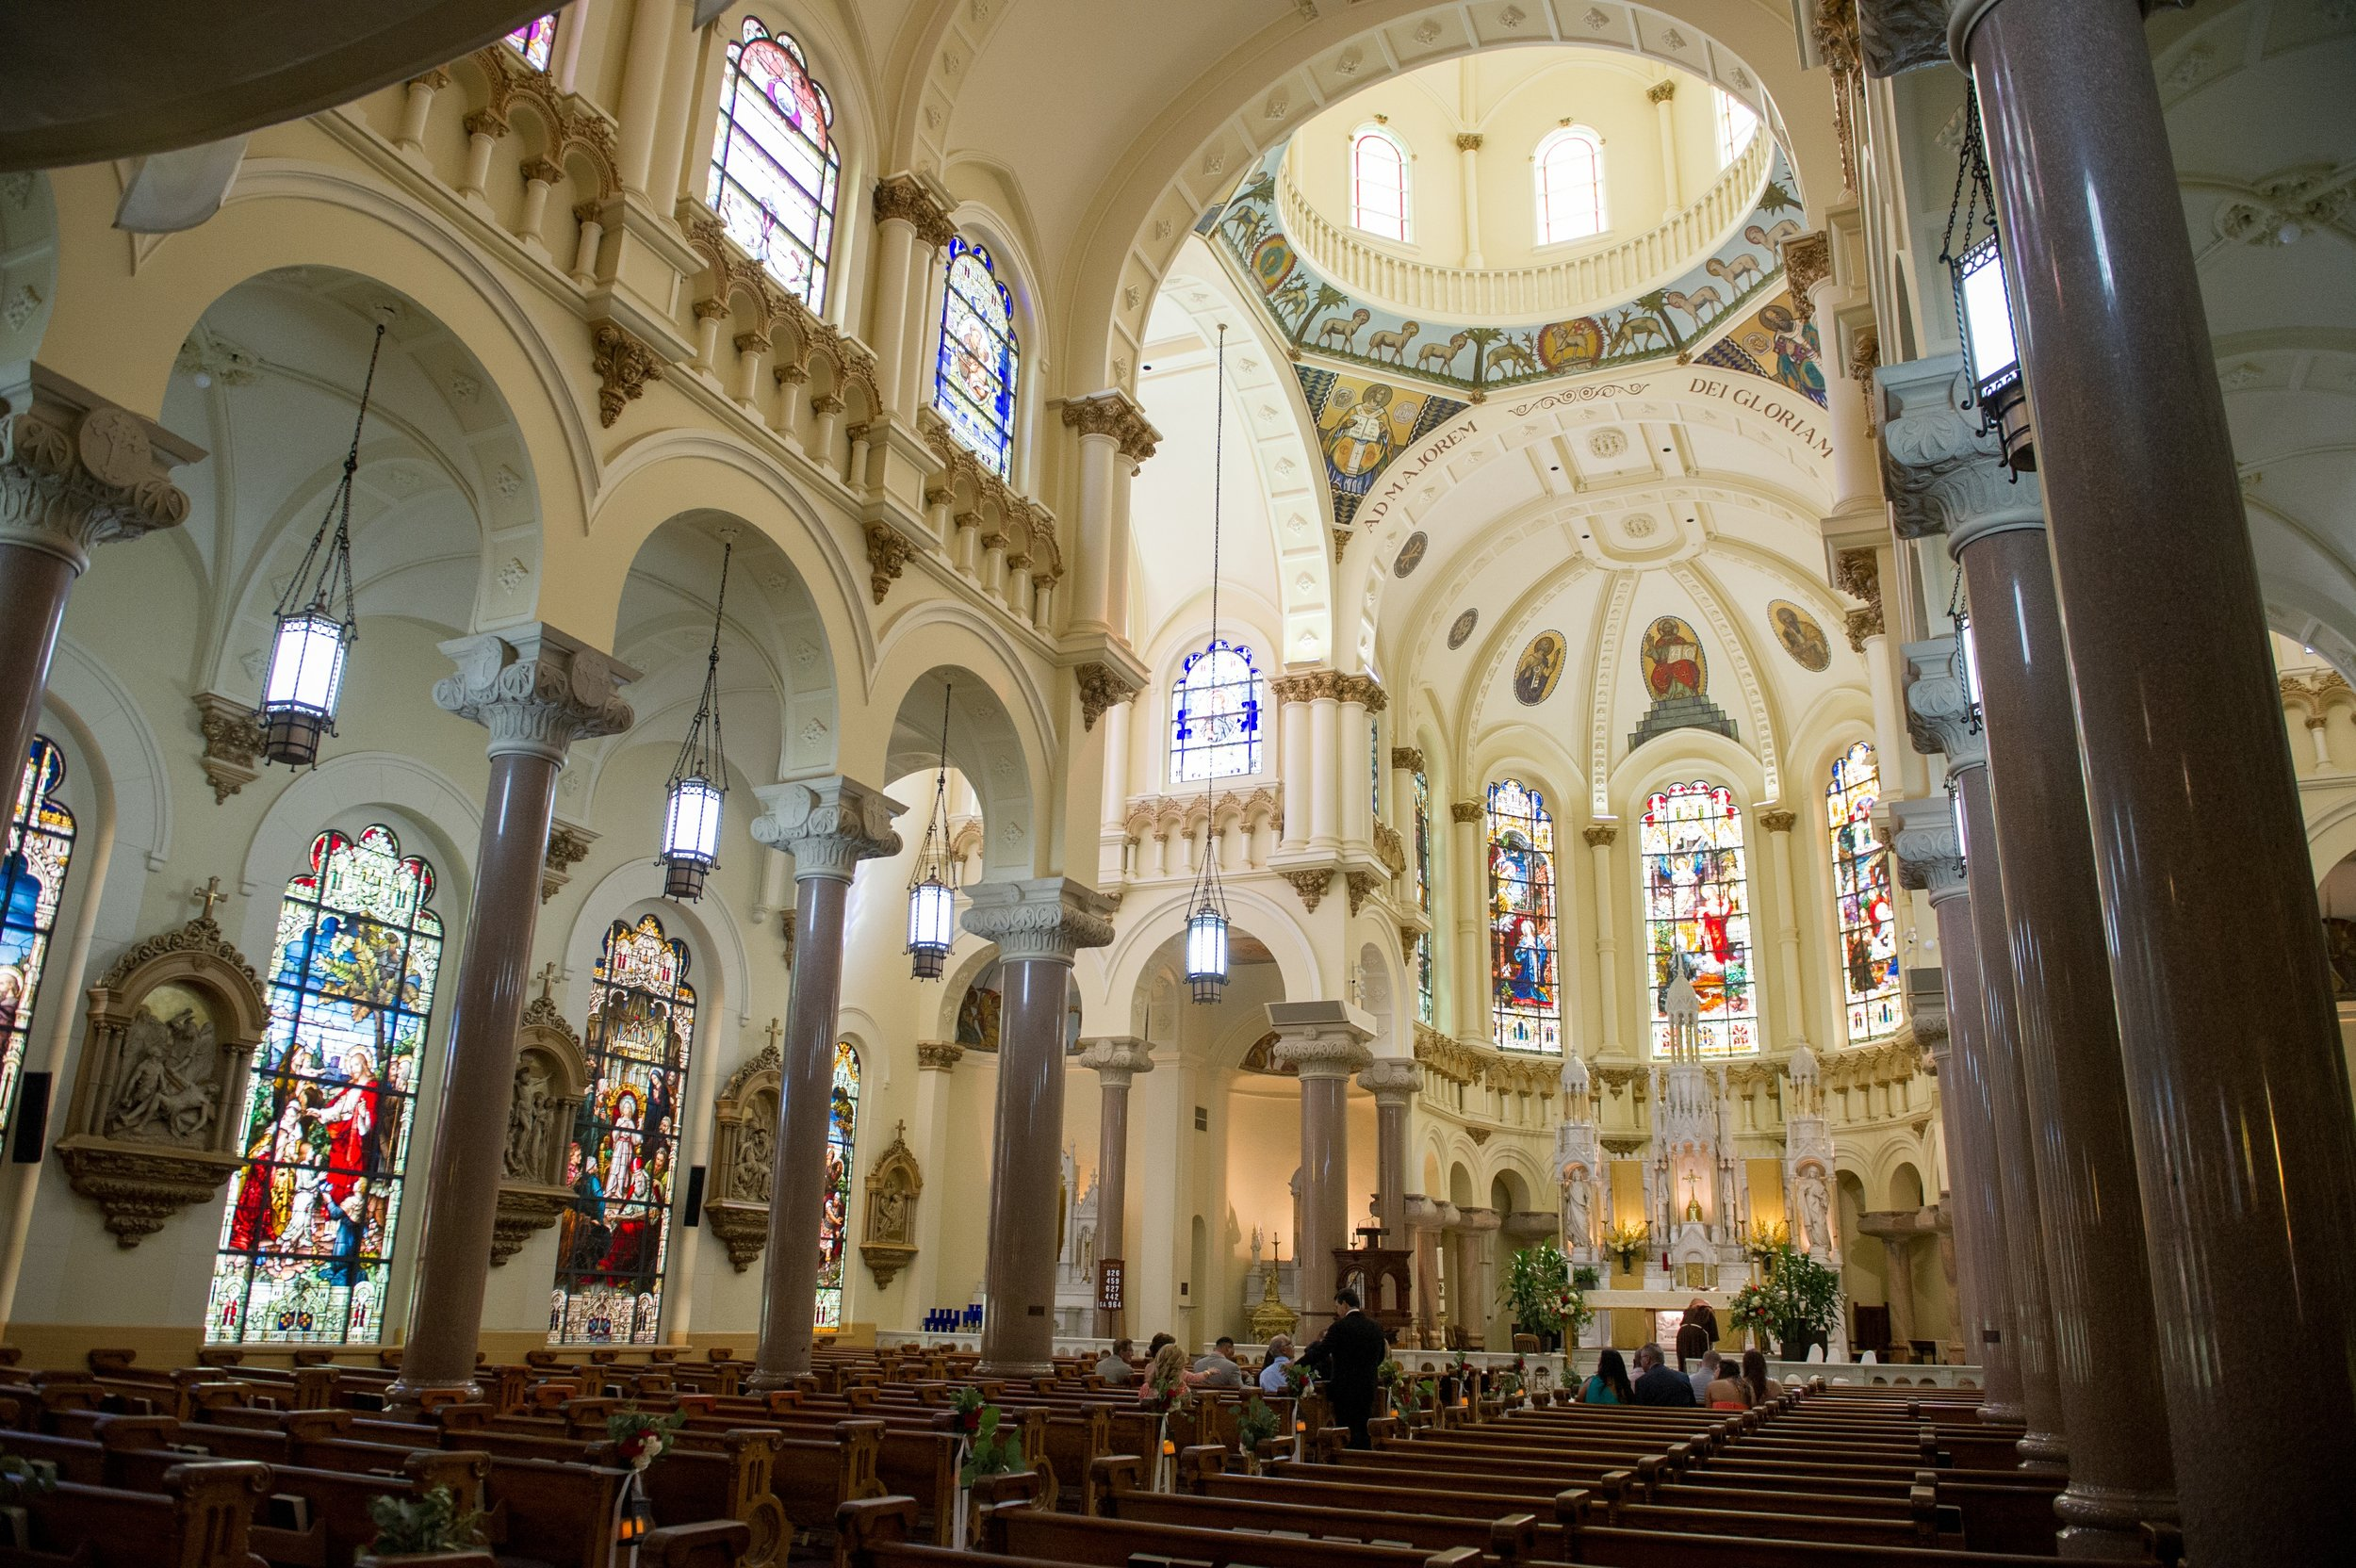 The traditional Catholic mass ceremony was held at the impressive Sacred Heart Catholic Church, a historic gothic style cathedral in Downtown Tampa.